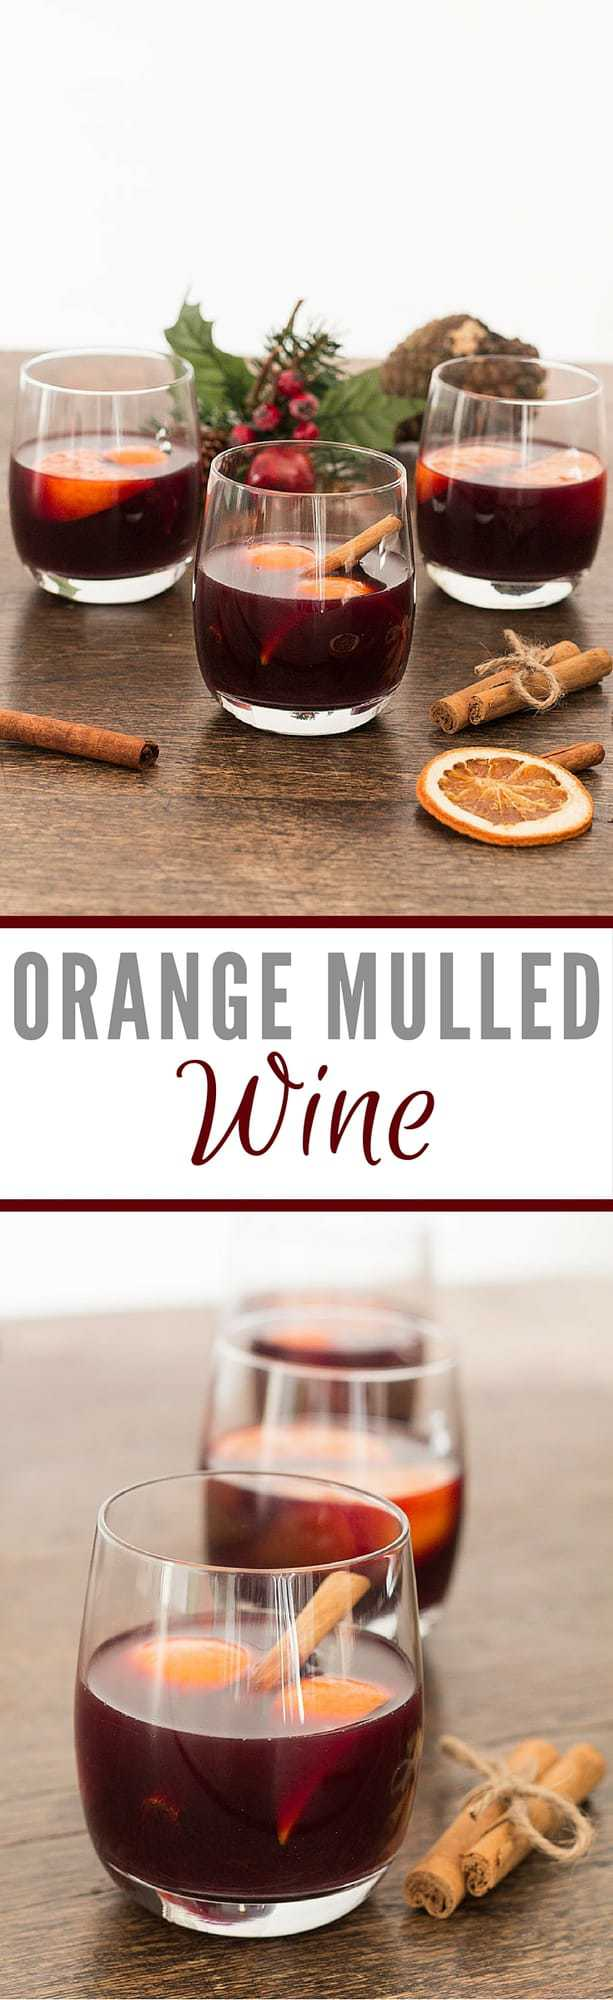 Orange Mulled Wine | Recipes From A Pantry